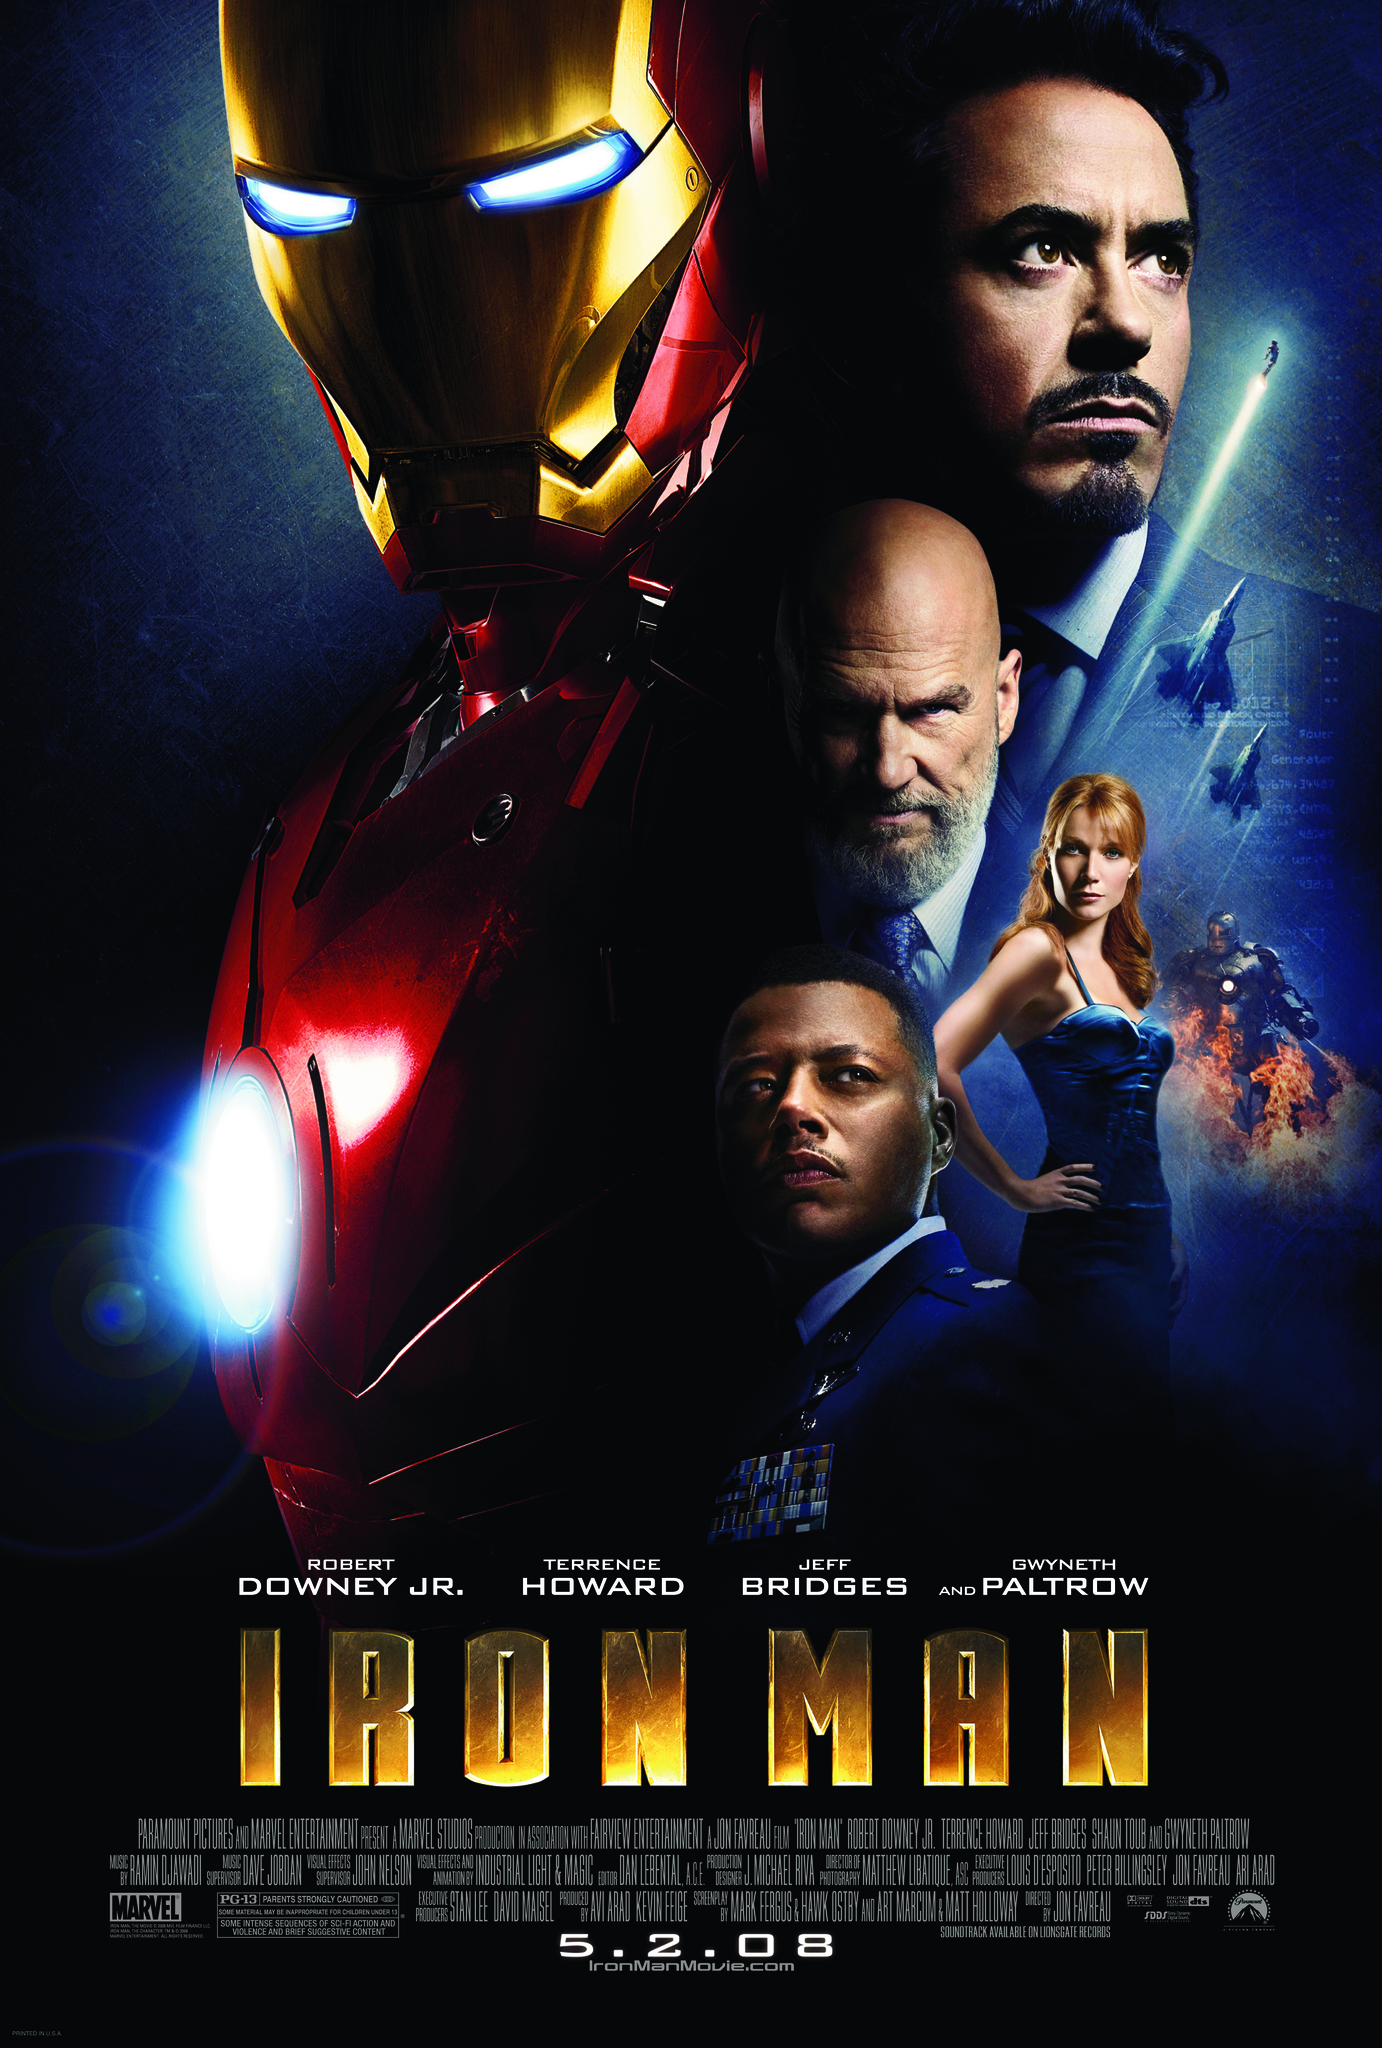 iron man 1 stream online free